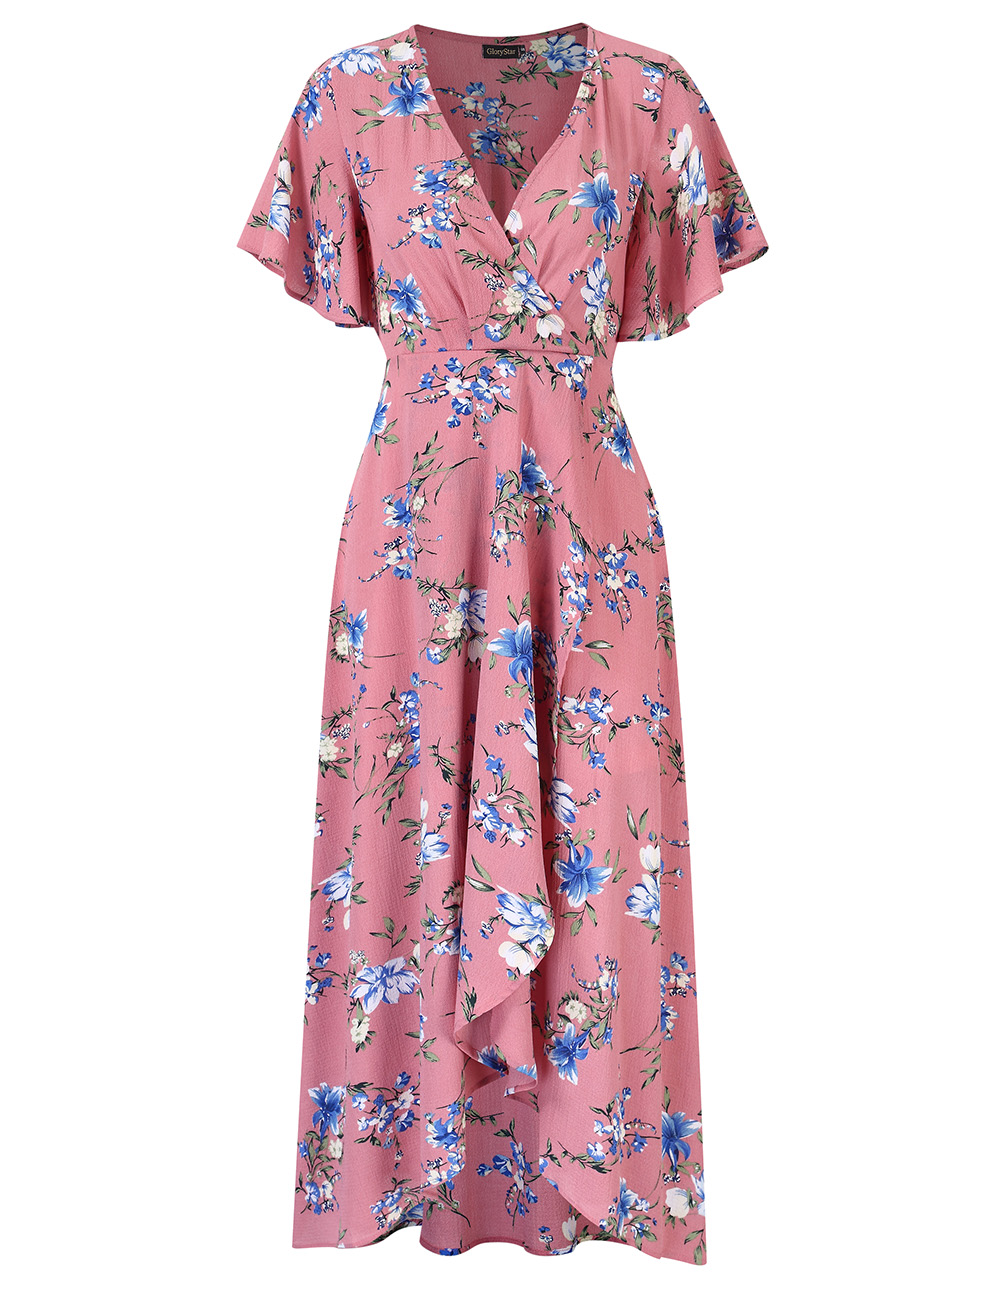 [US Direct] Women Chiffon Dress V-neck Floral Print Short Sleeve Middle Waist Split Maxi Dress